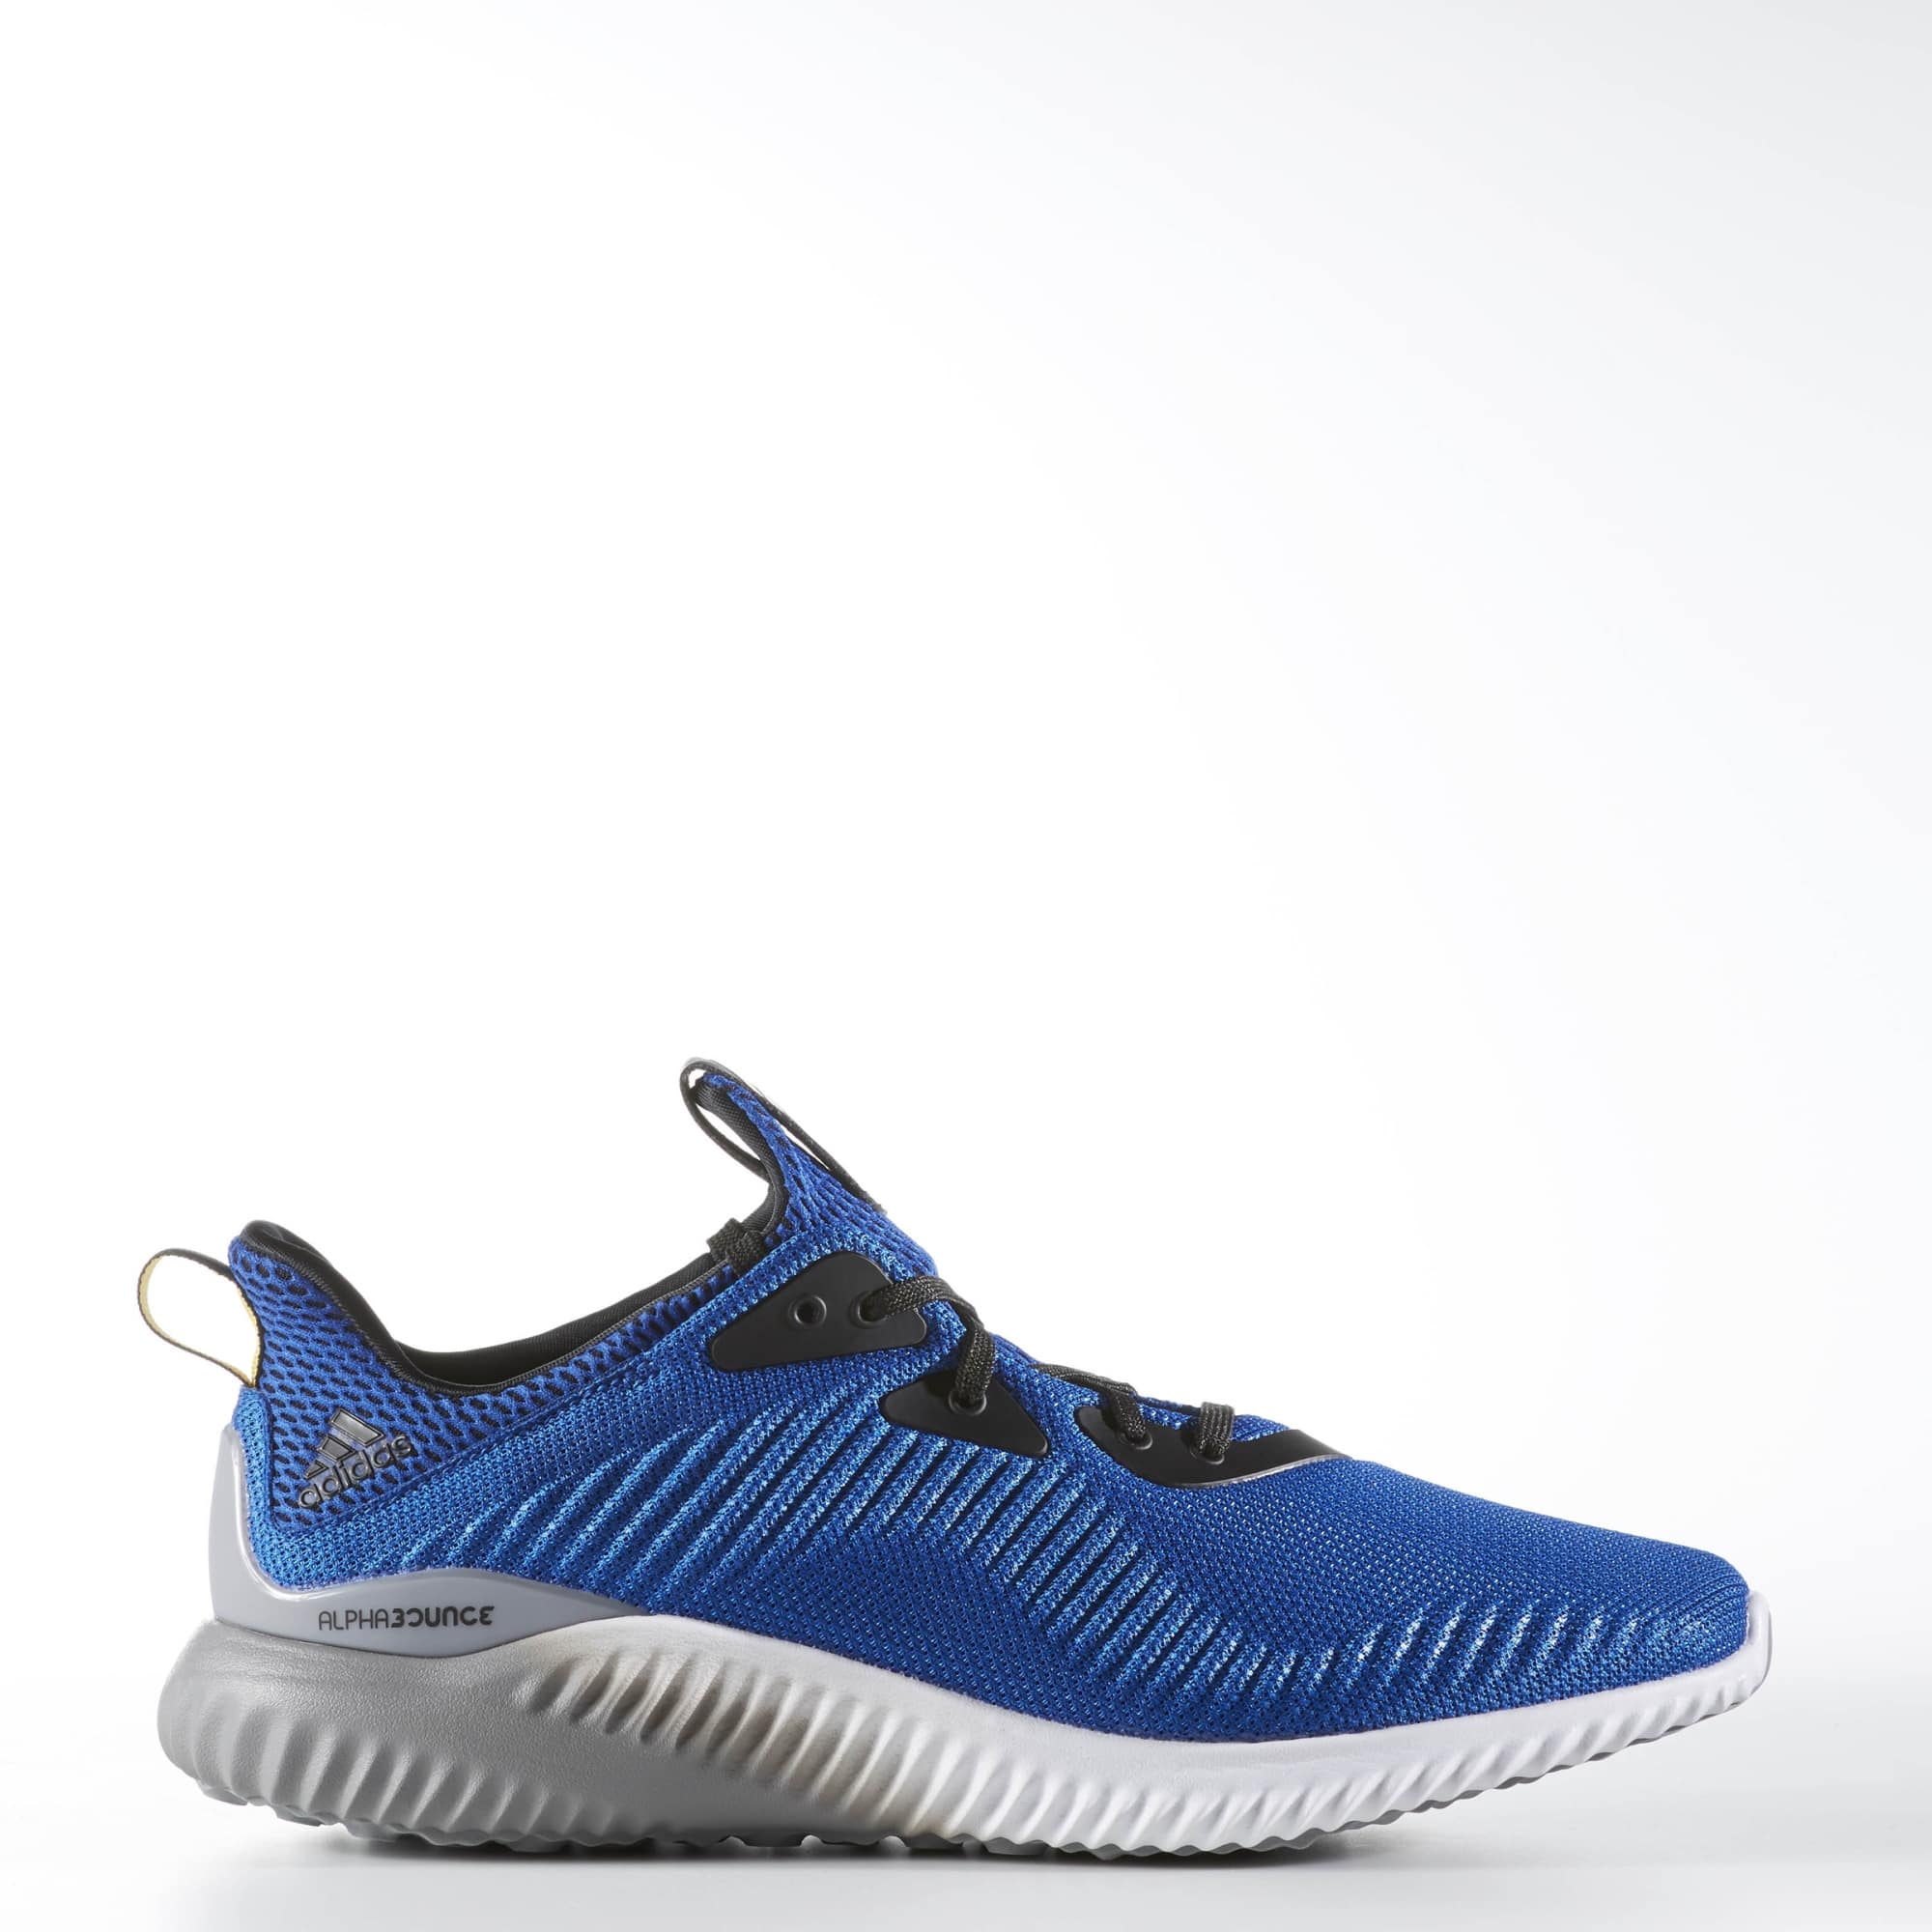 Adidas MEN'S RUNNING ALPHABOUNCE SHOES + free shipping + no tax - 50$